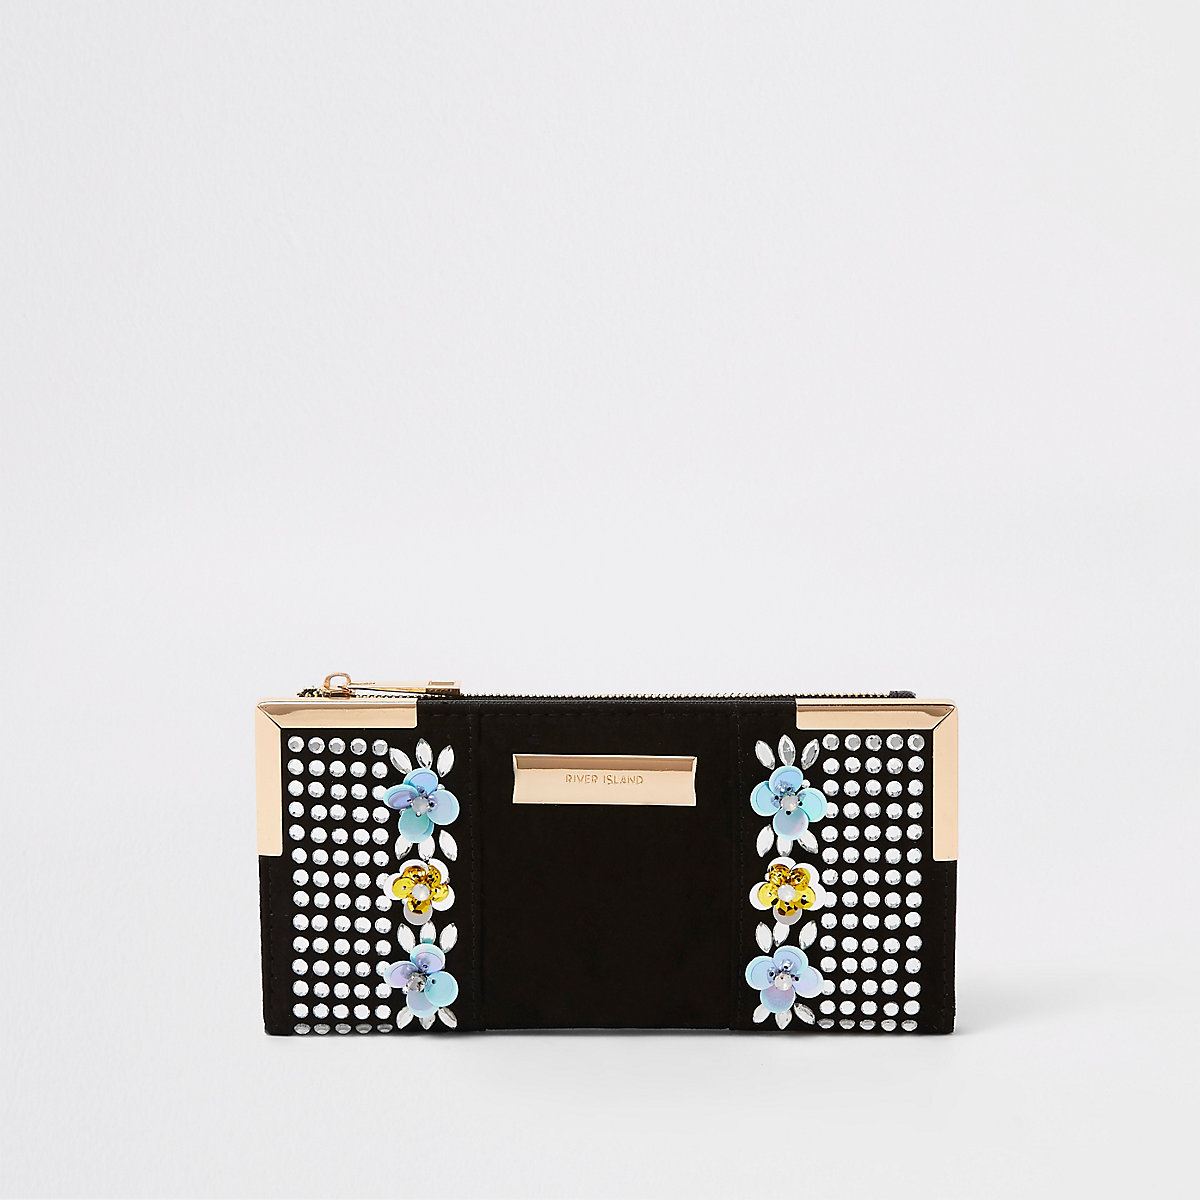 Black sequin embellished foldout purse